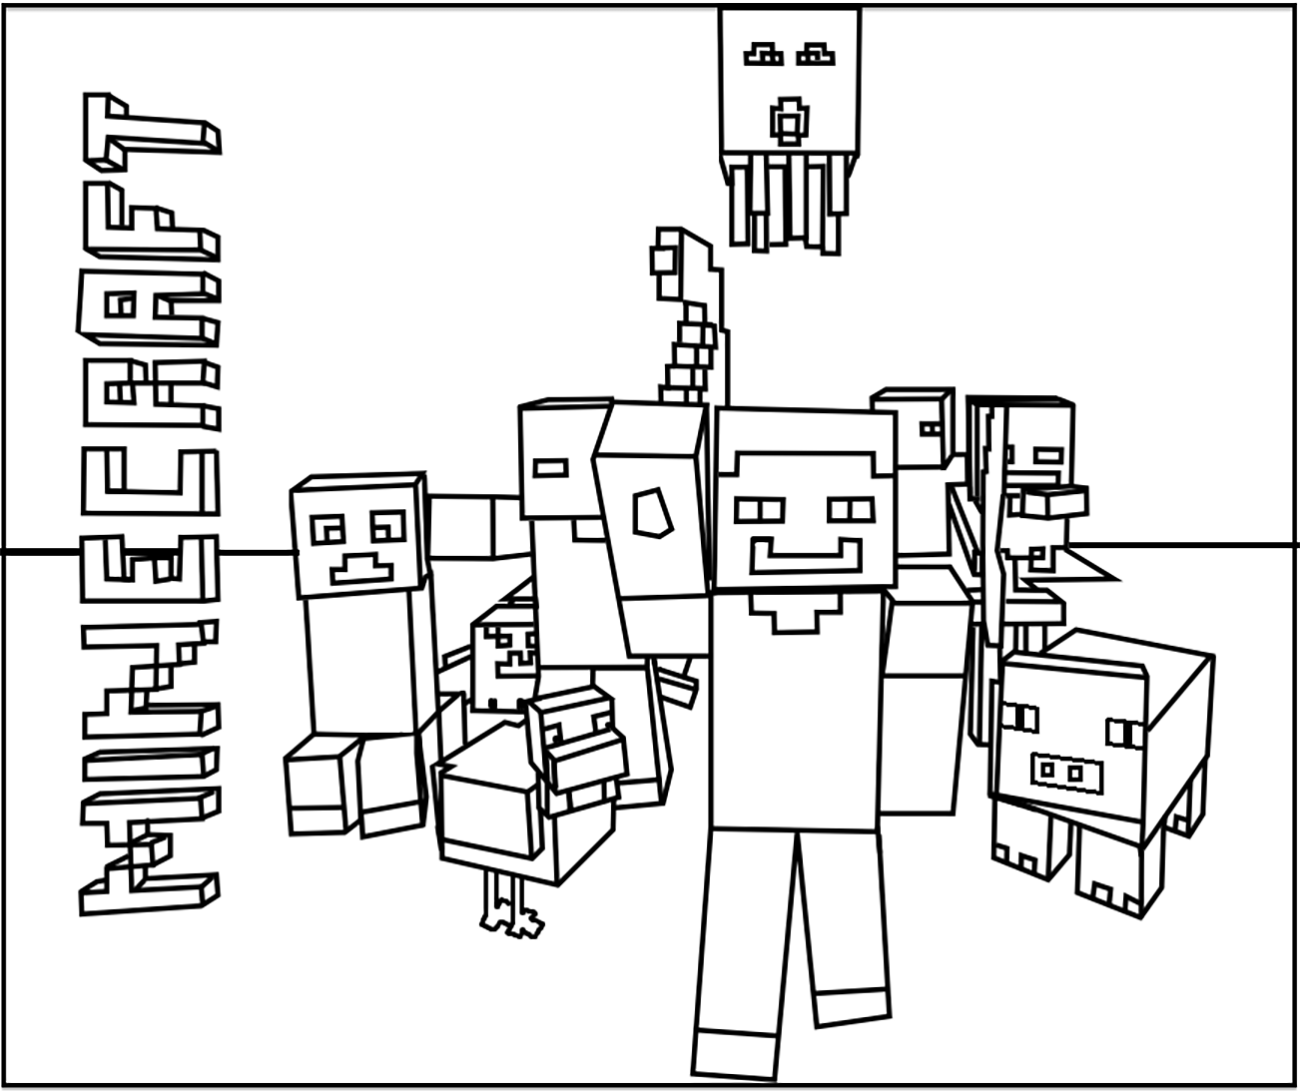 Grab Your New Coloring Pages Minecraft Download Https Www Gethighit Com New Coloring Minecraft Coloring Pages Minecraft Printables Printable Coloring Pages